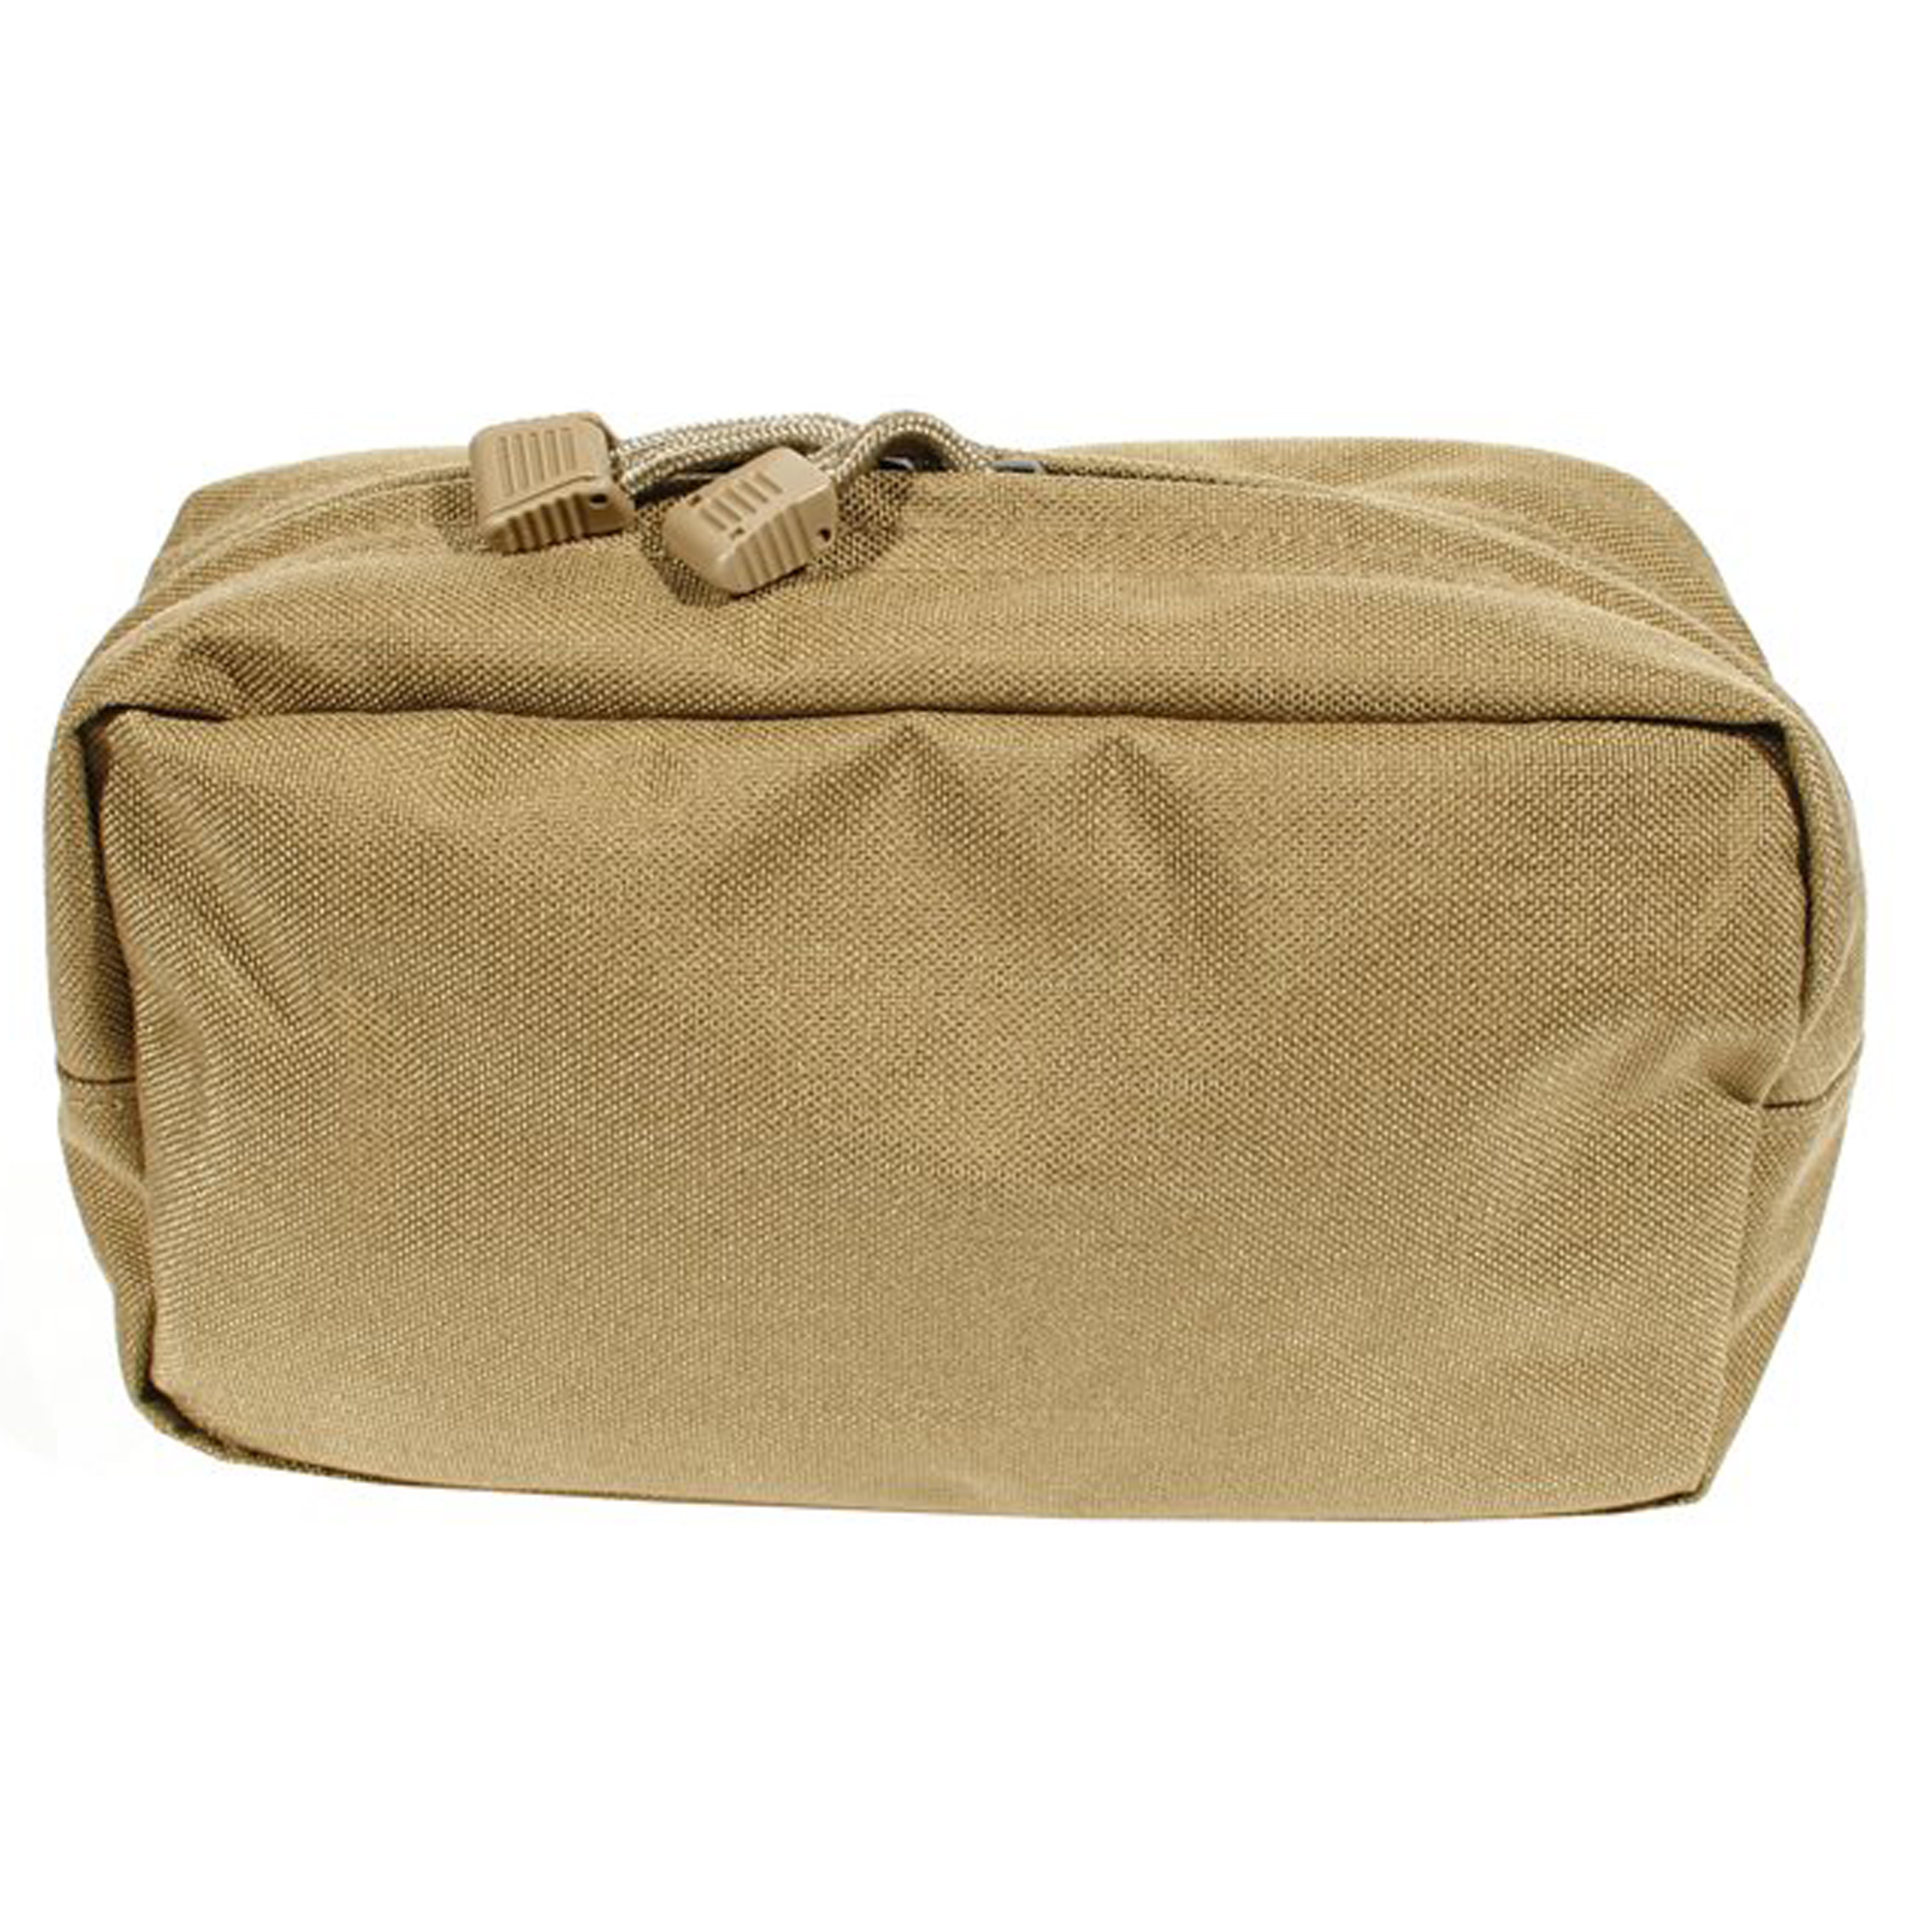 Bh Strike Utility Pouch Coyote Tan